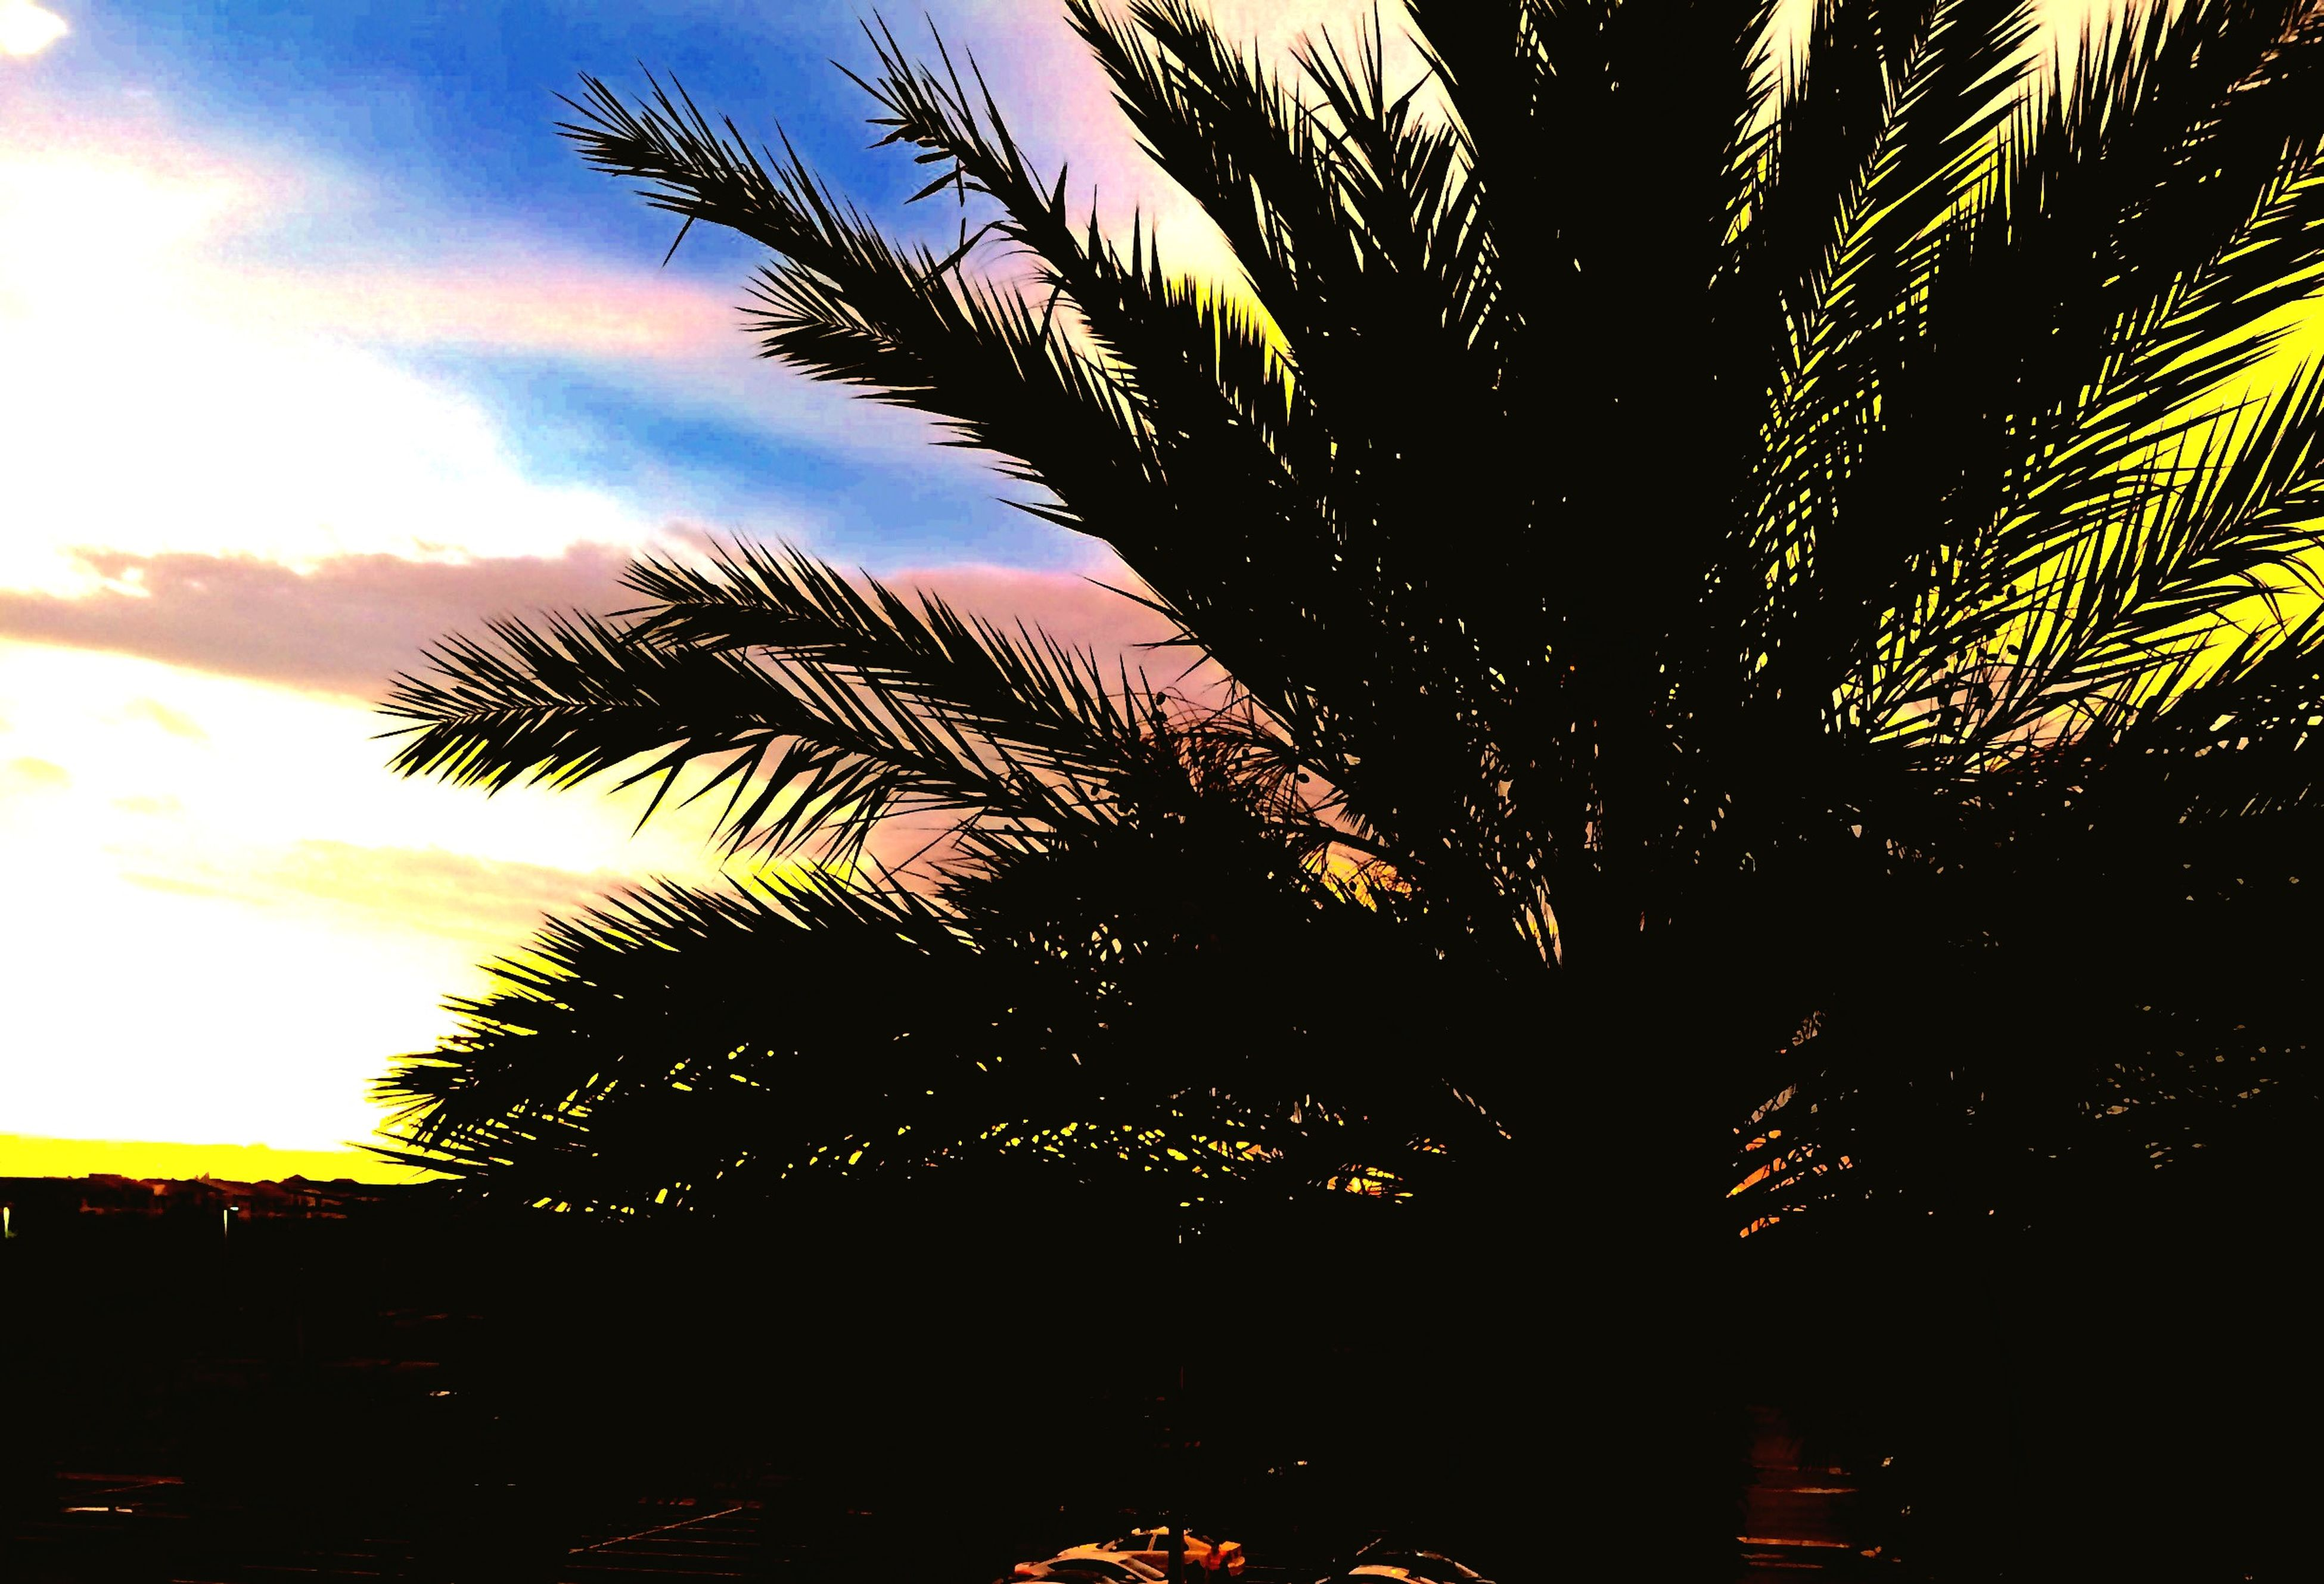 tree, palm tree, silhouette, sky, low angle view, growth, sunset, nature, tranquility, beauty in nature, branch, scenics, outdoors, cloud - sky, no people, tranquil scene, leaf, sunlight, sun, dusk